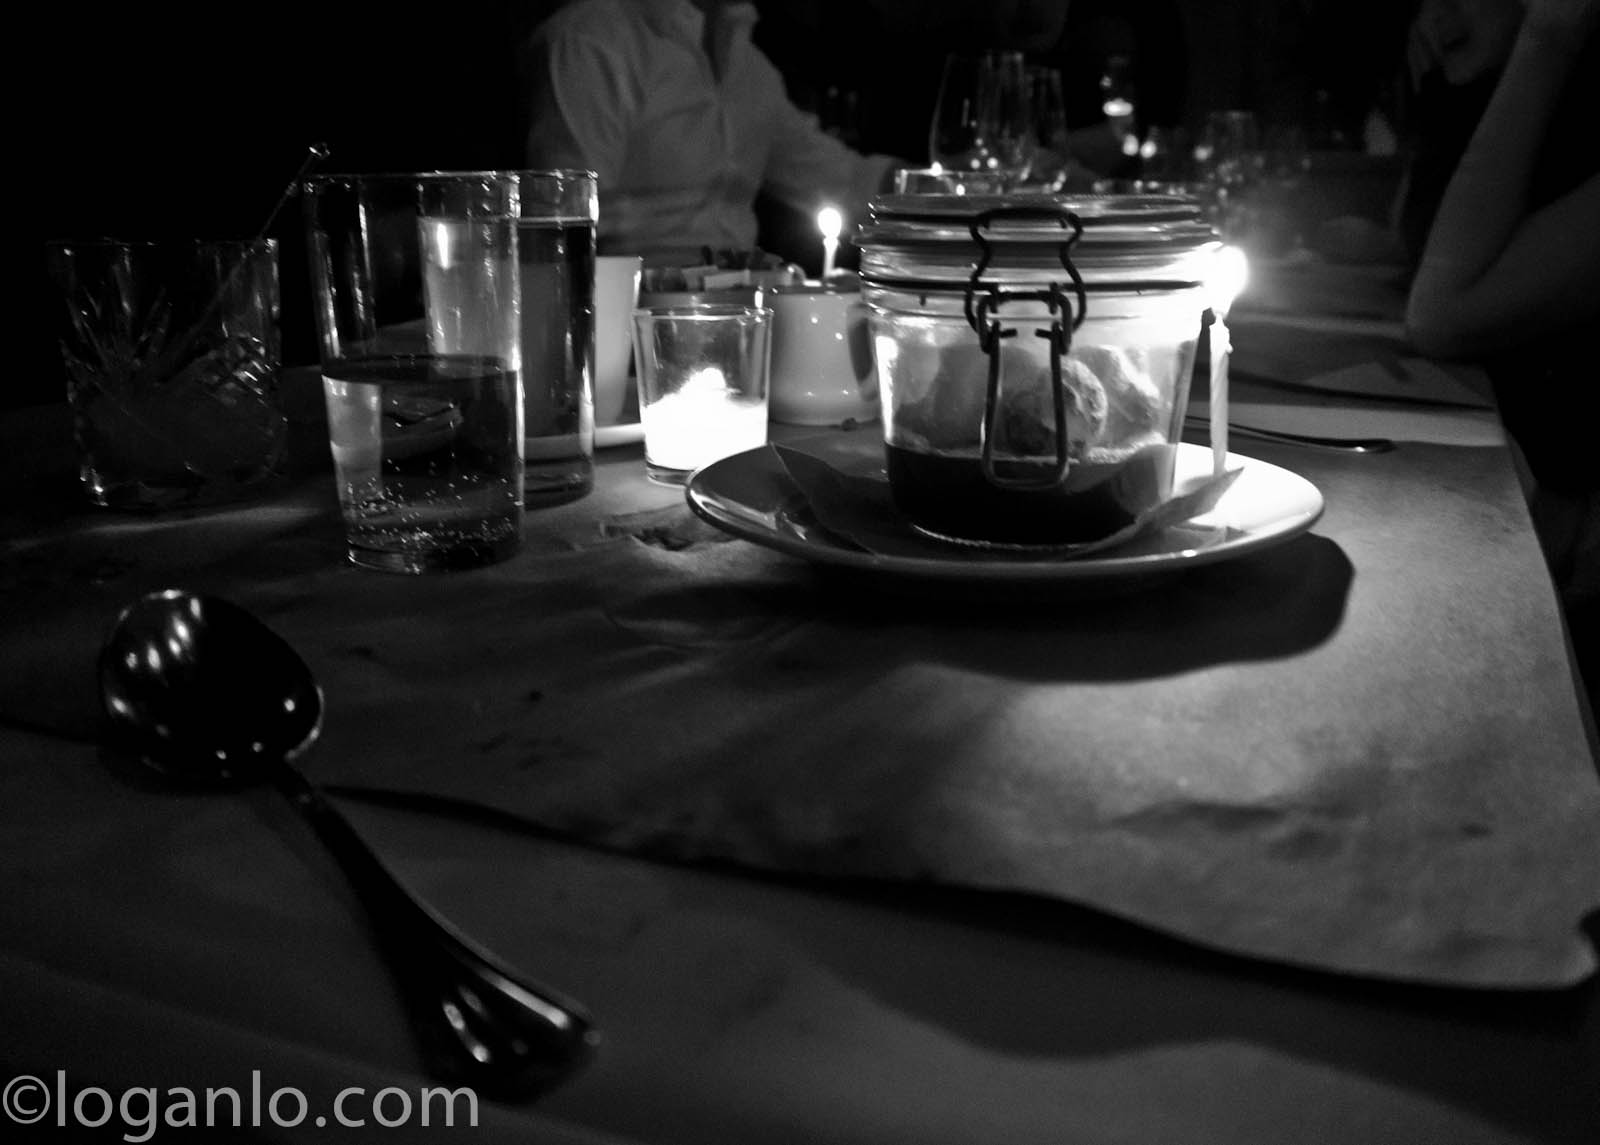 Black and white dinner setting